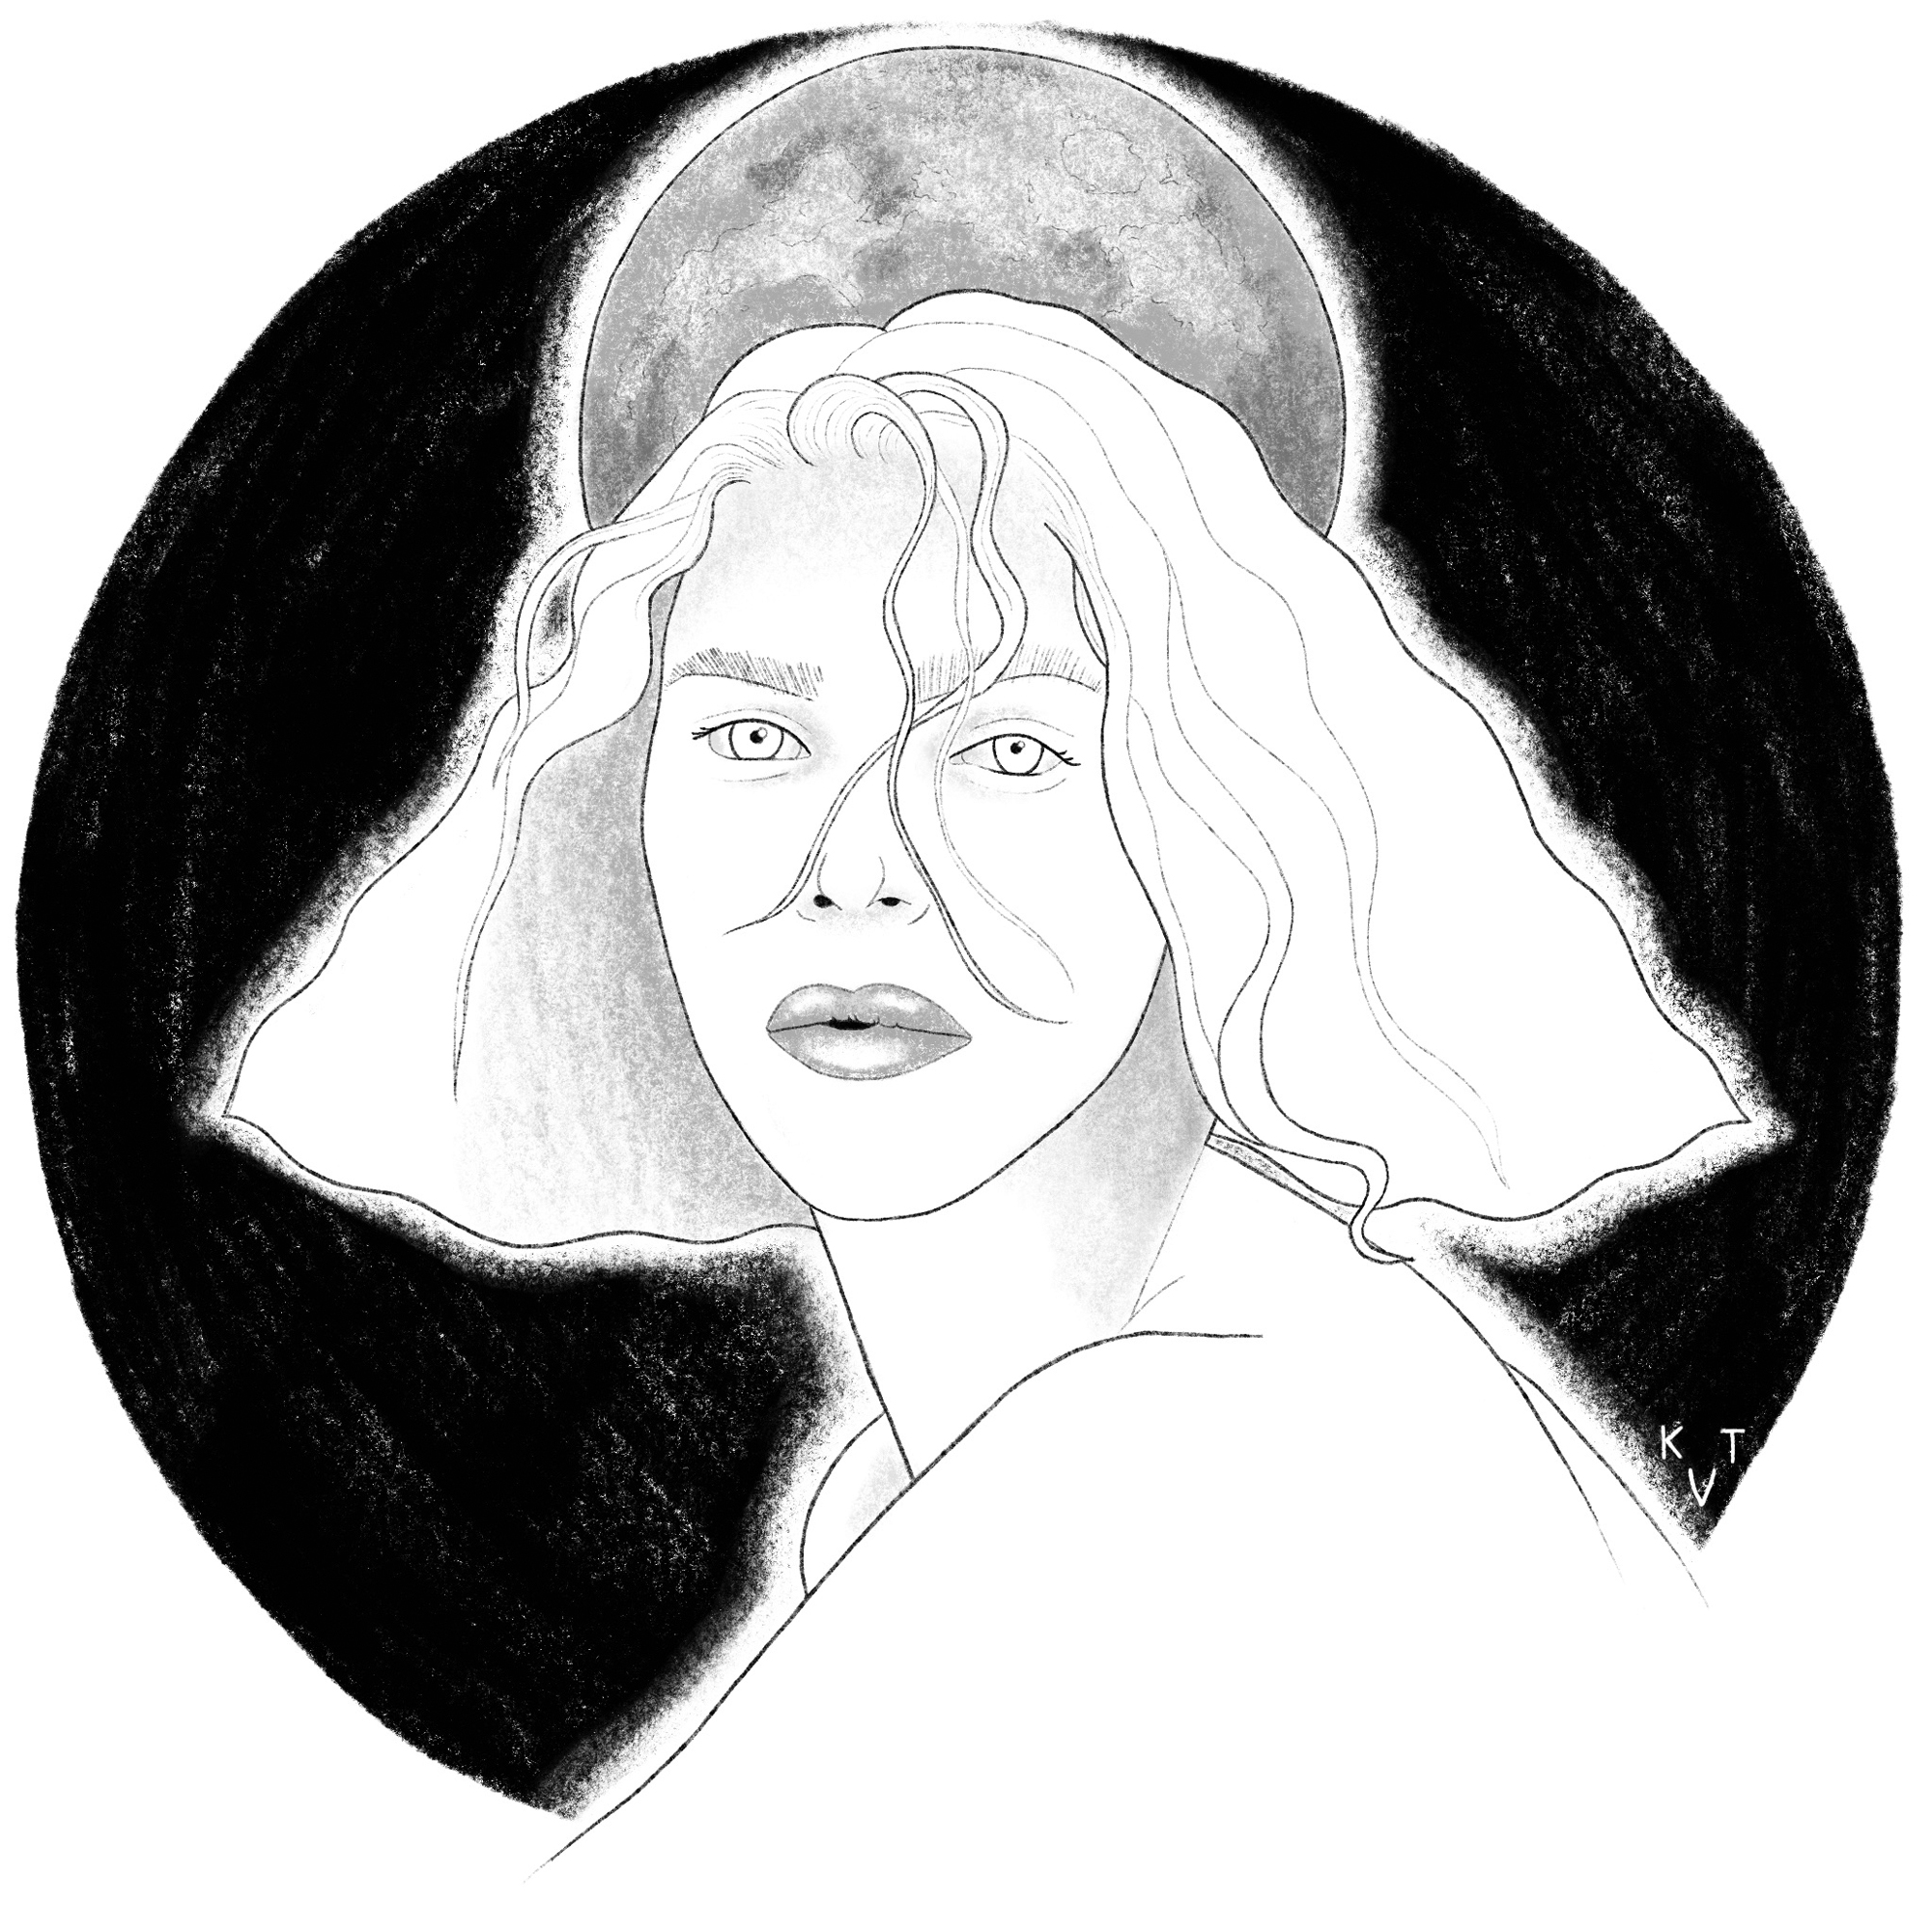 A black and white illustration of SOPHIE, with the moon behind her. Her eyes are white and her hair is curly with wisps of it falling in her face. There's a black circle surrounding her, with a gray moon above her head. Illustration by Kallie Tiffau.